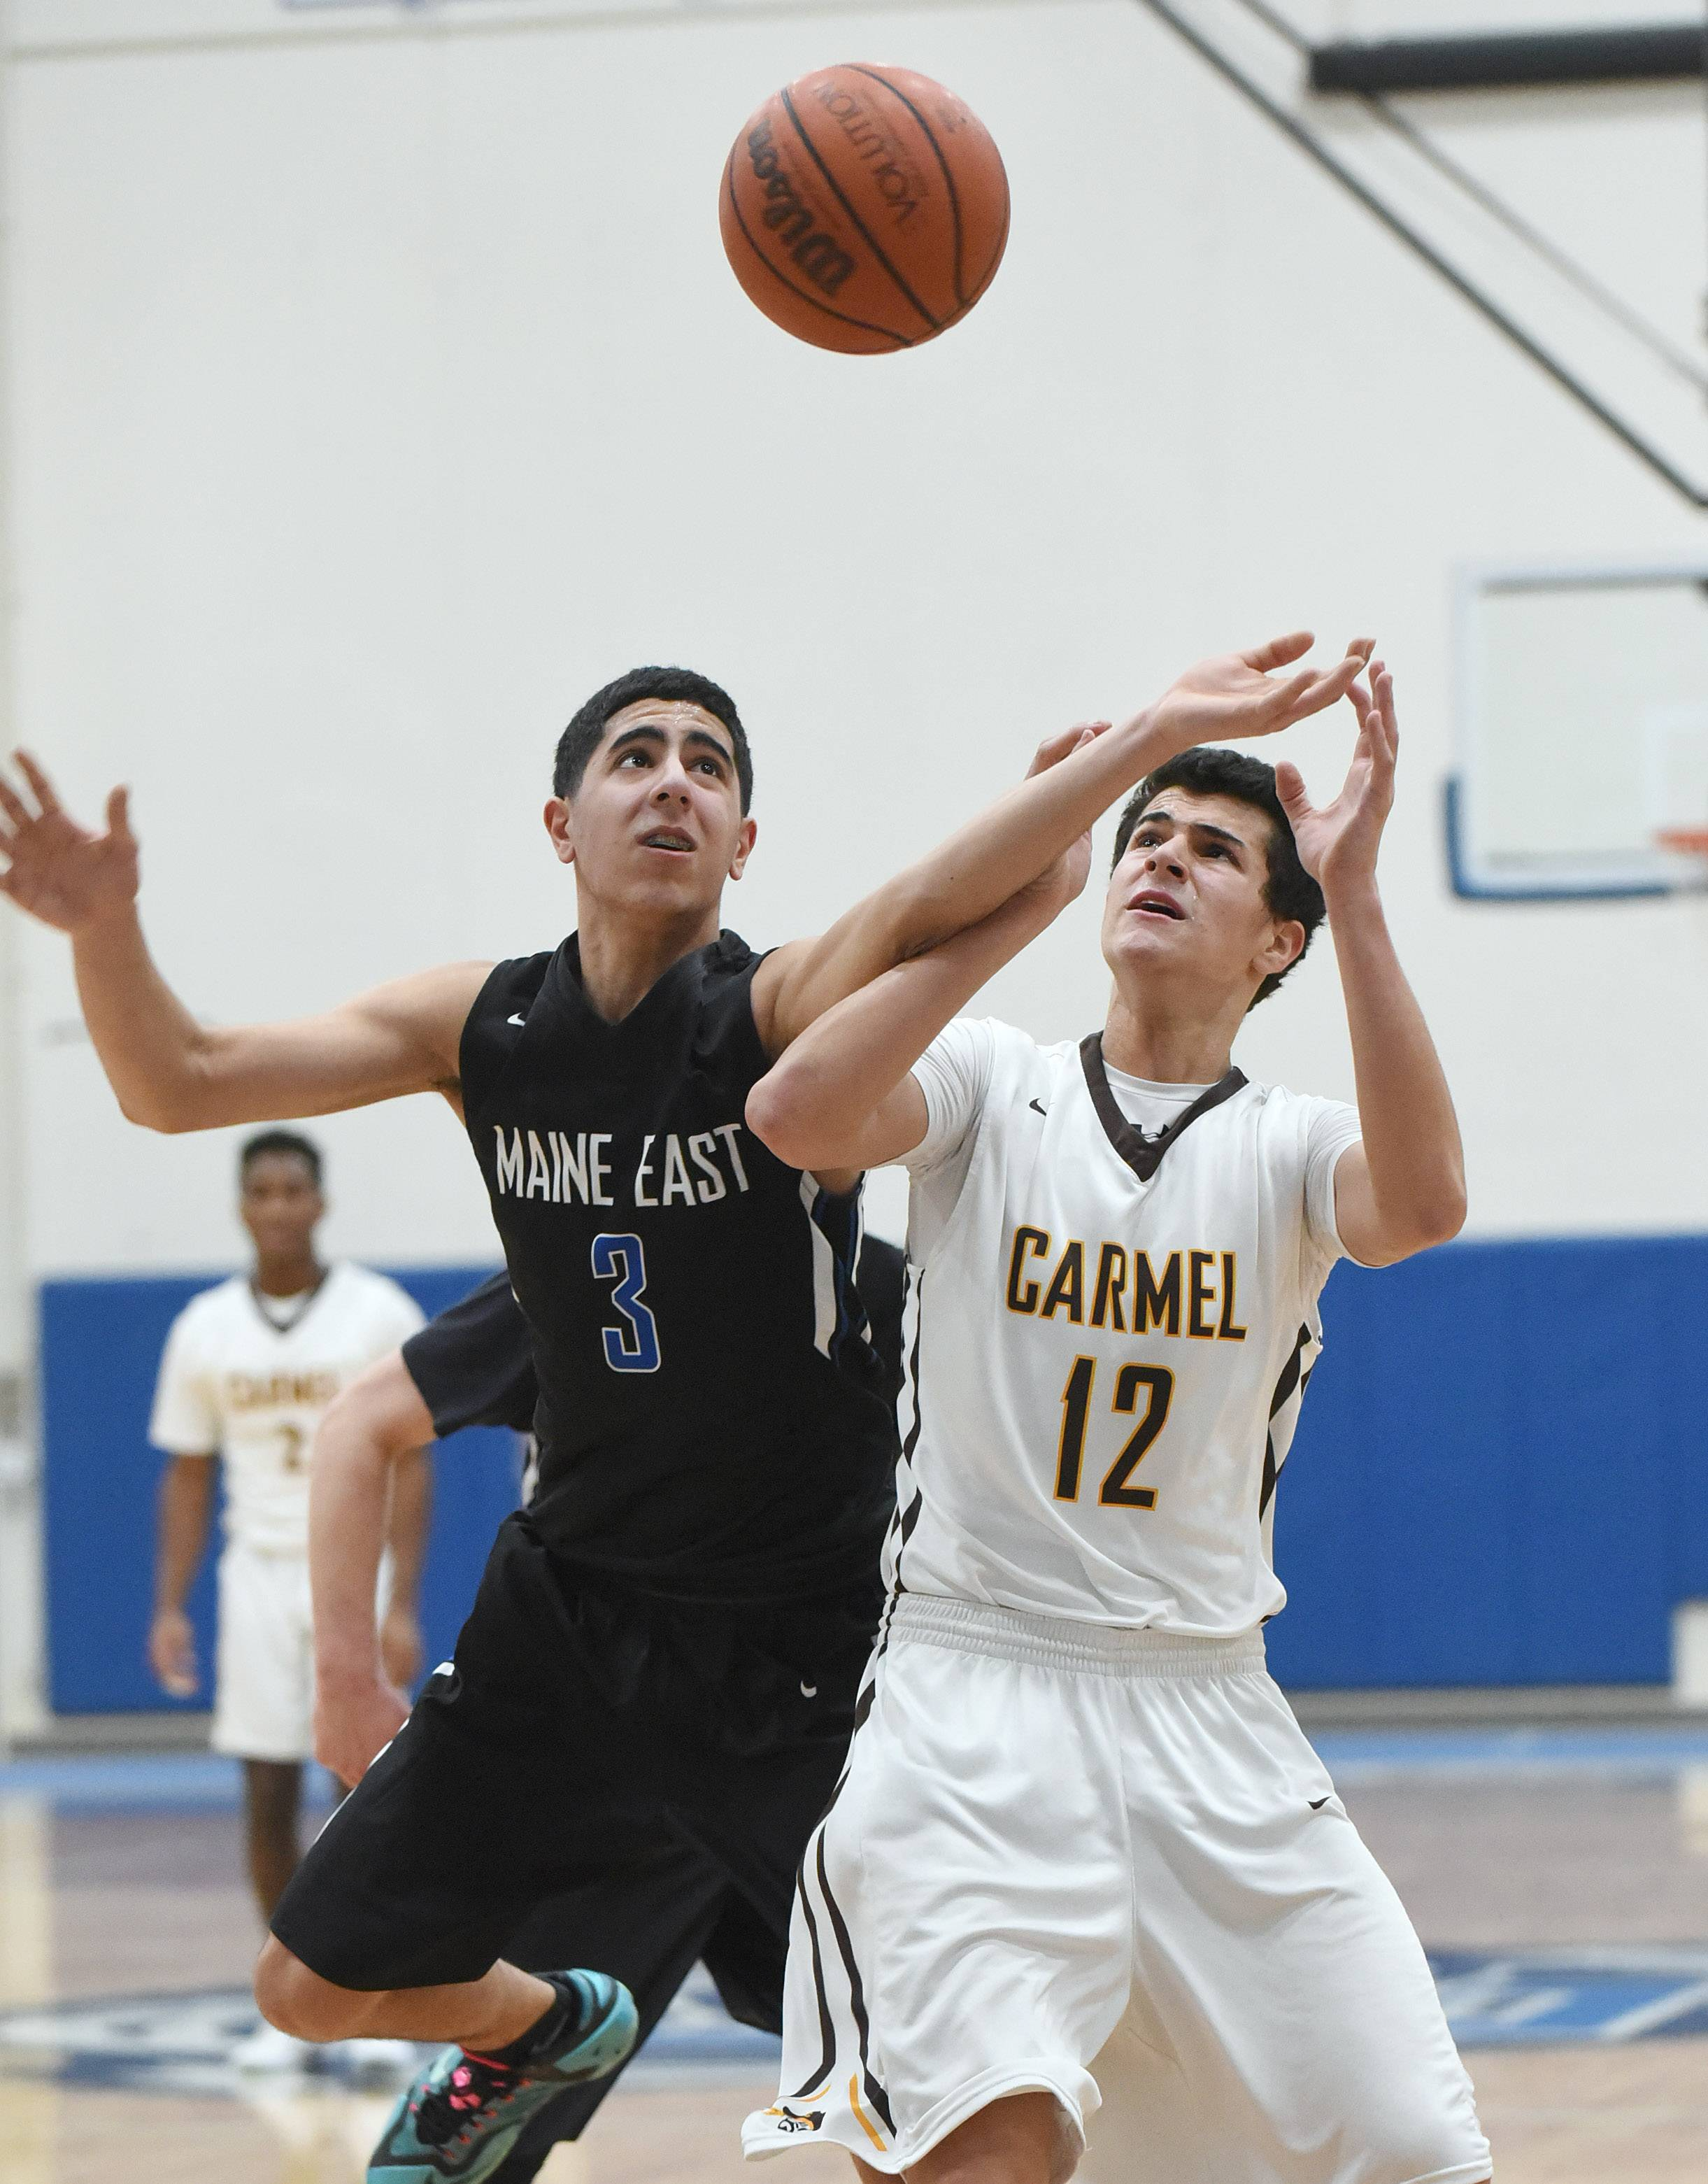 Maine East's Ali Sabet (3) and Carmel's Evan Myers (12) eye the rebound during Monday's MLK tournament at Lake Zurich.